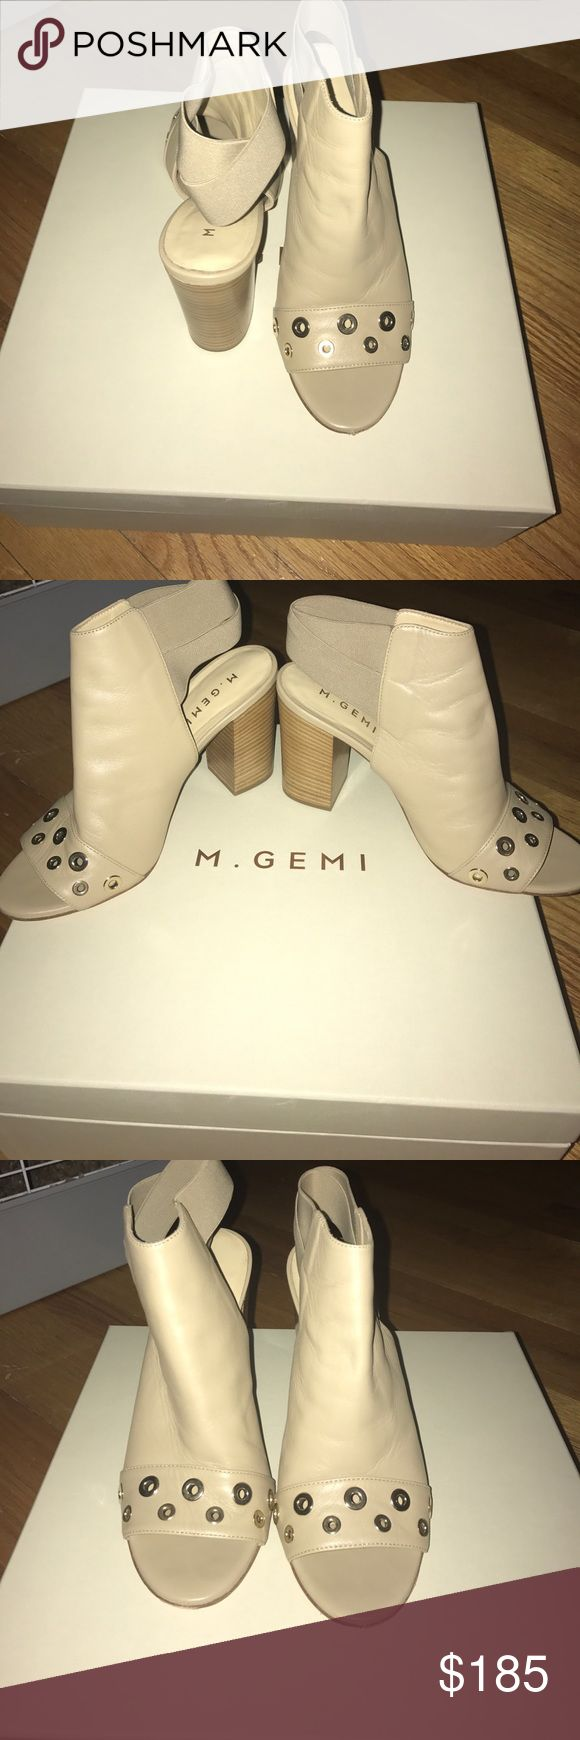 M GEMI Italian Leather Shoes BRAND NEW Size 8.5 ⭐️⭐️AMAZING DEAL⭐️⭐️⭐️Brand new, Still with original Packaging, Box and Dust Bag included, Italian Leather, SAND color M. Gemi Shoes Heels